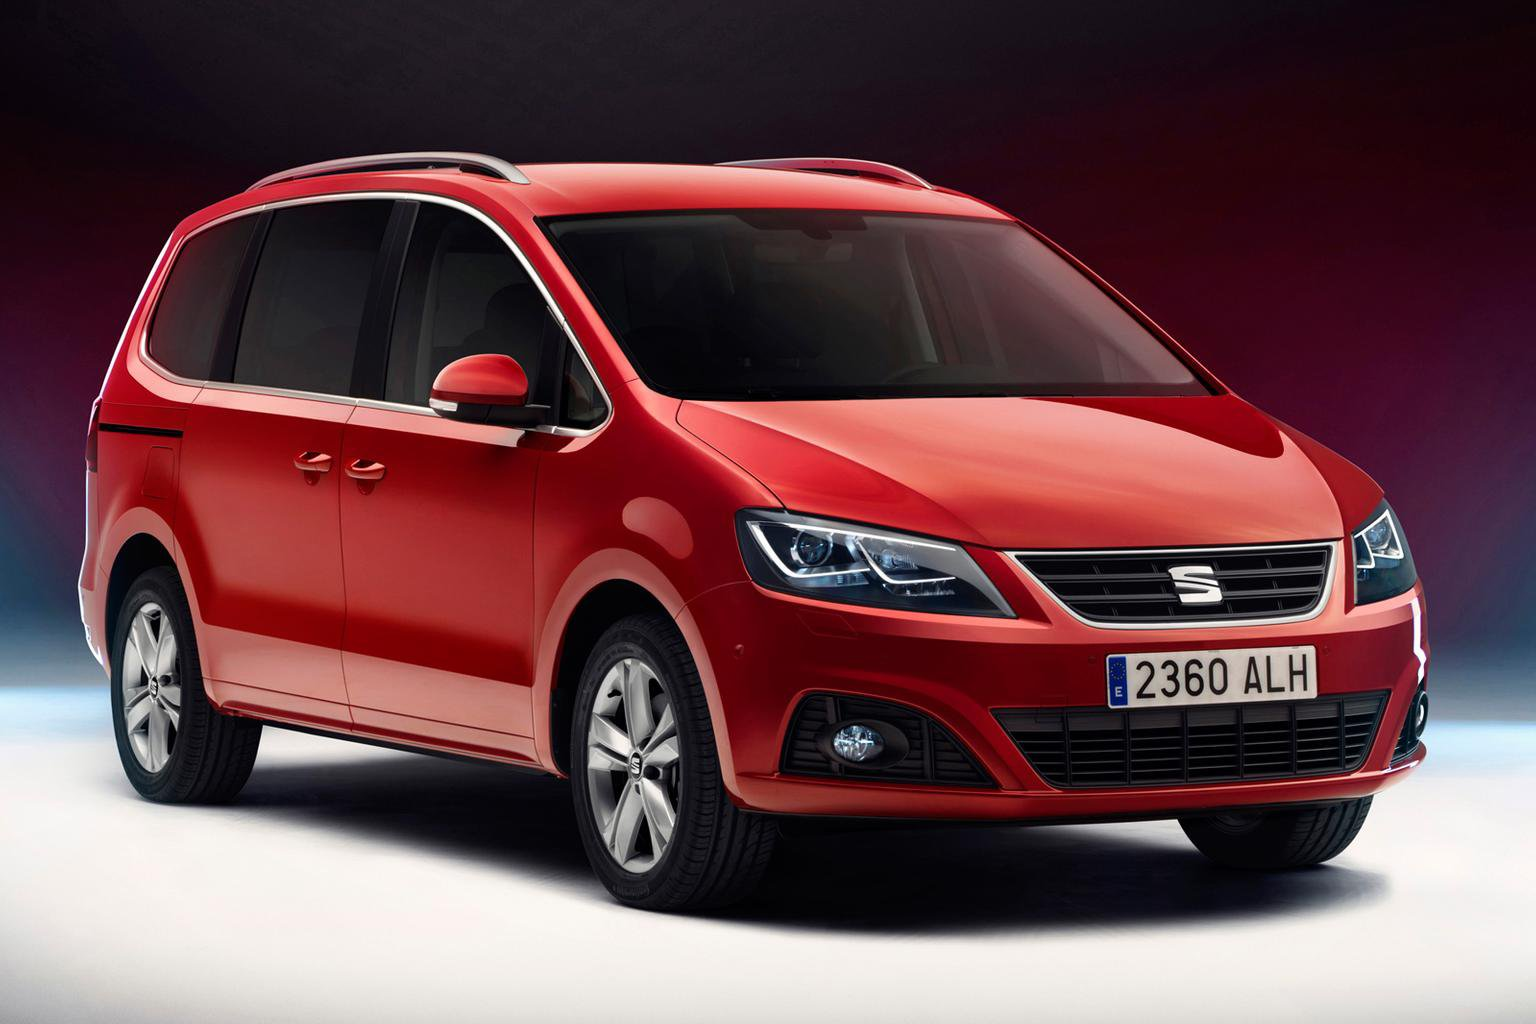 2015 Seat Alhambra facelift revealed - engines, specs and pictures